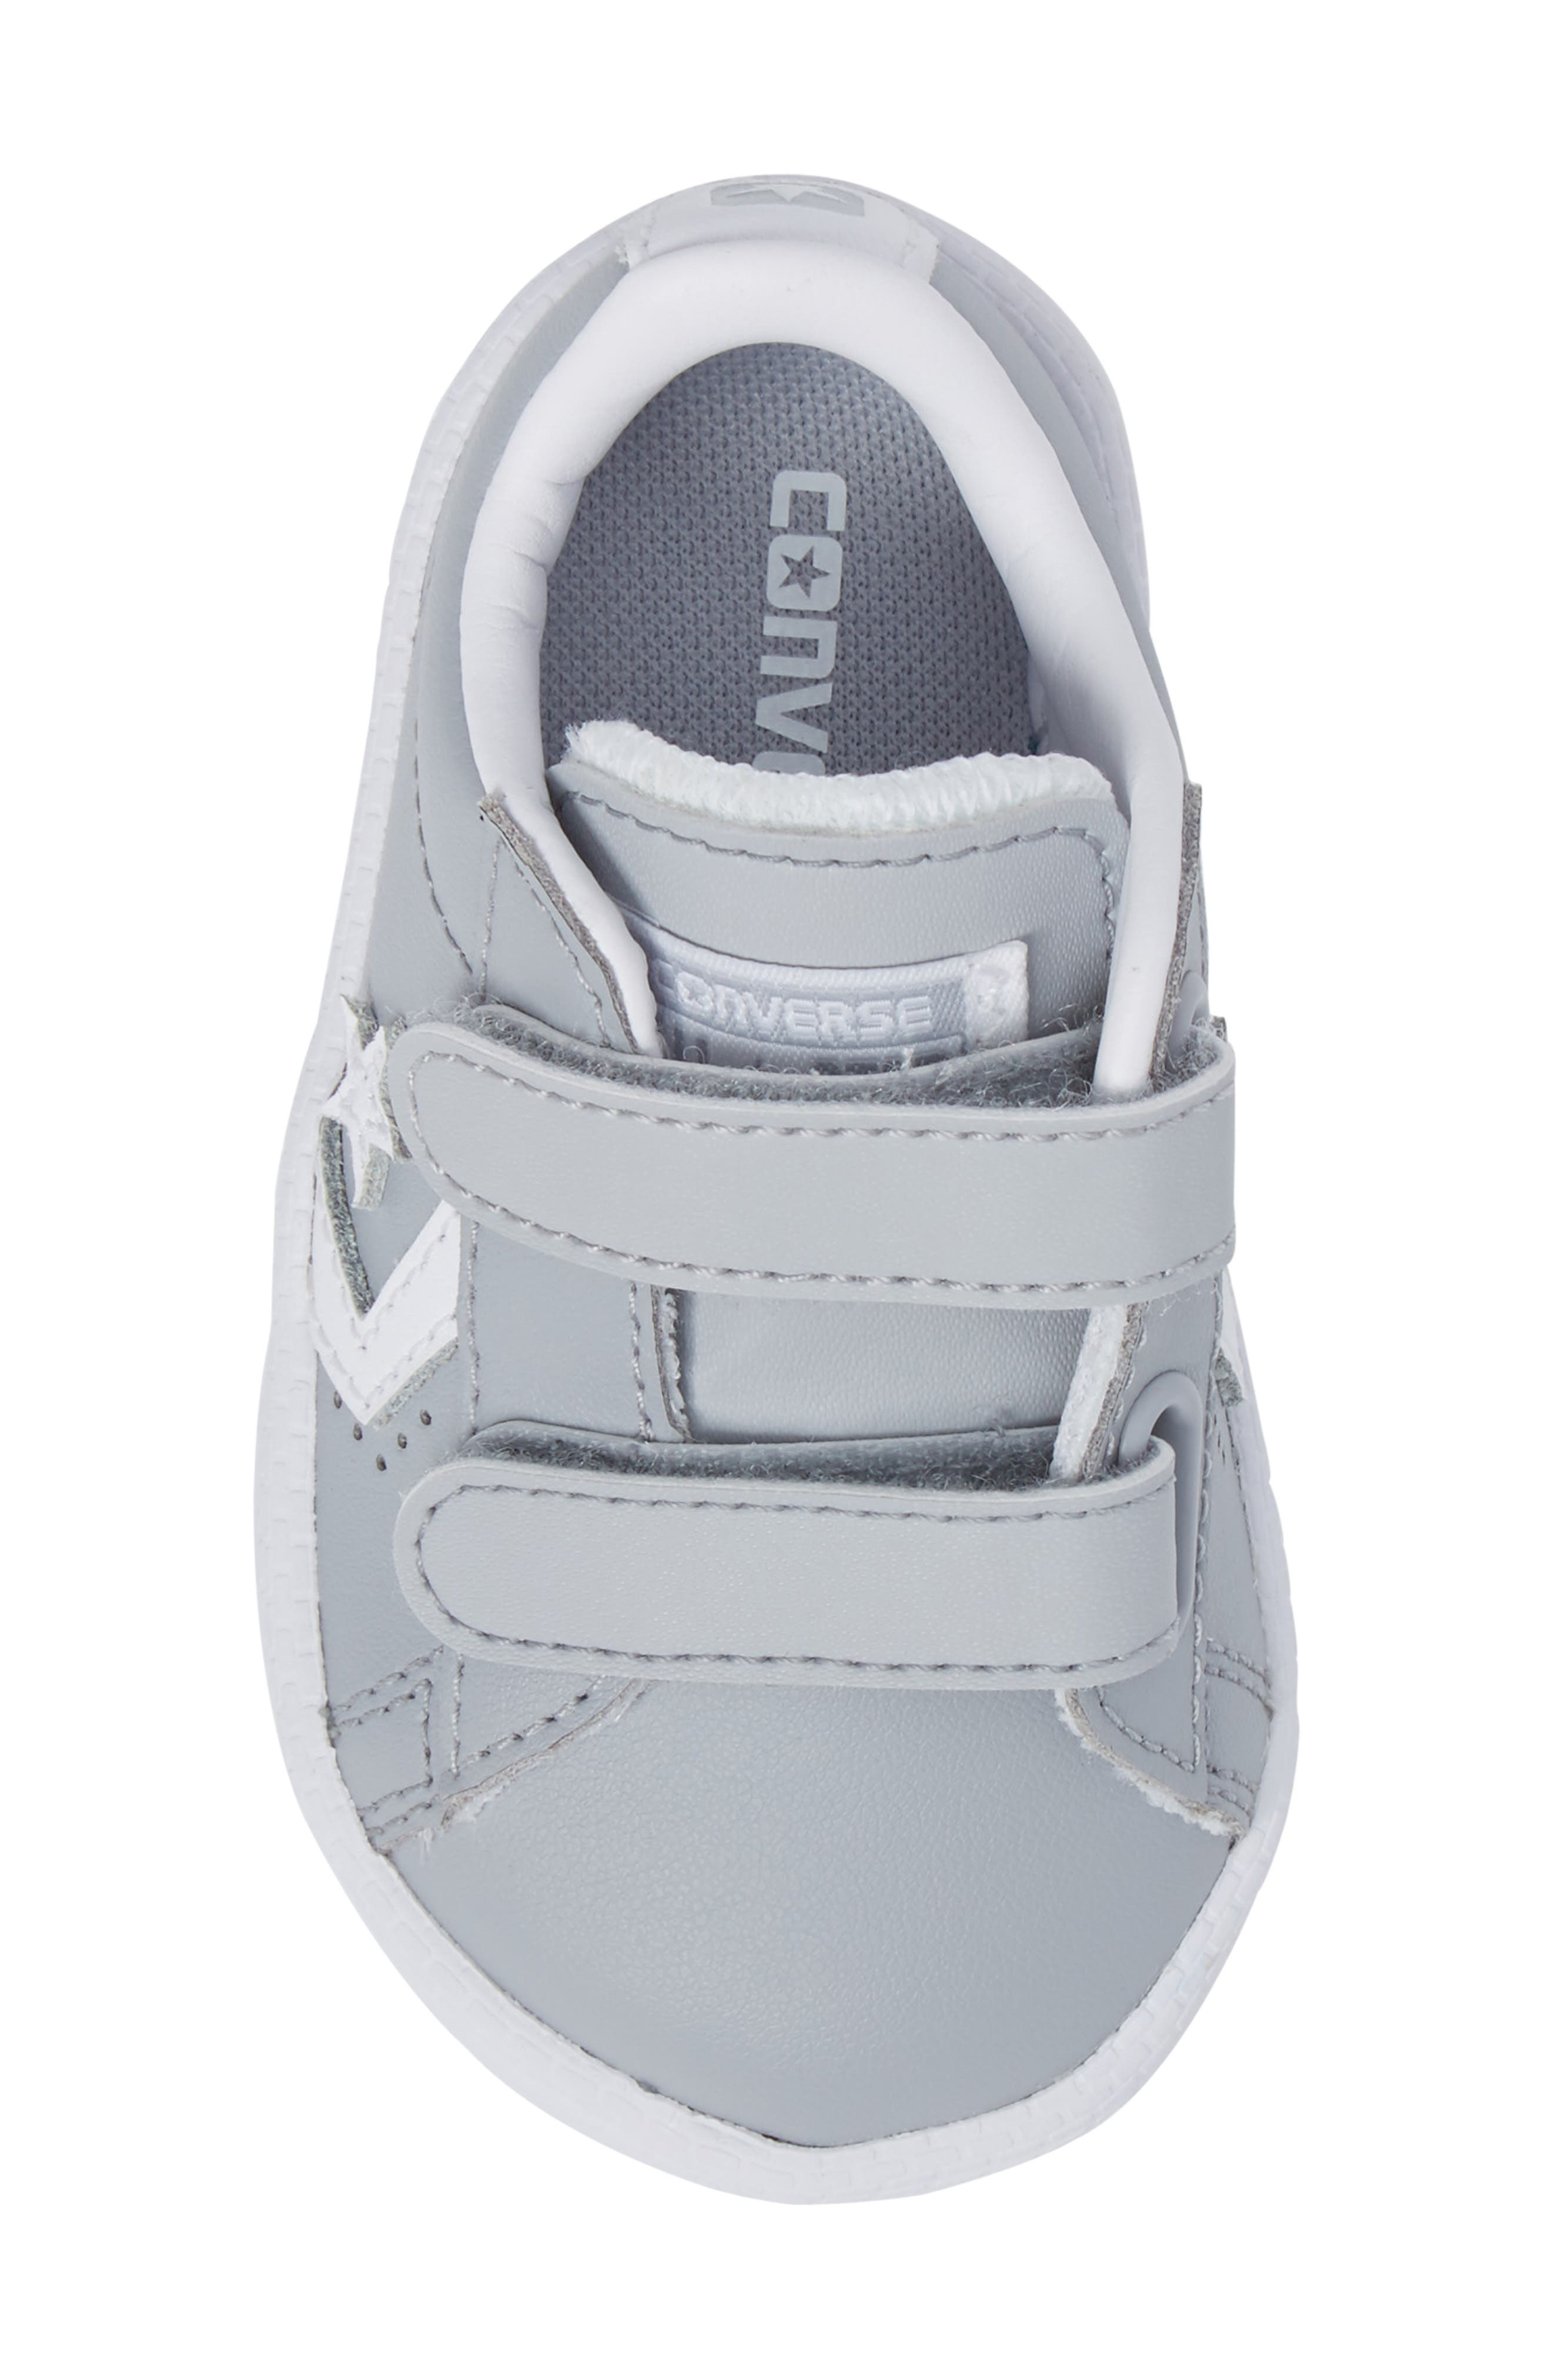 Pro Leather Low Top Sneaker,                             Alternate thumbnail 5, color,                             097